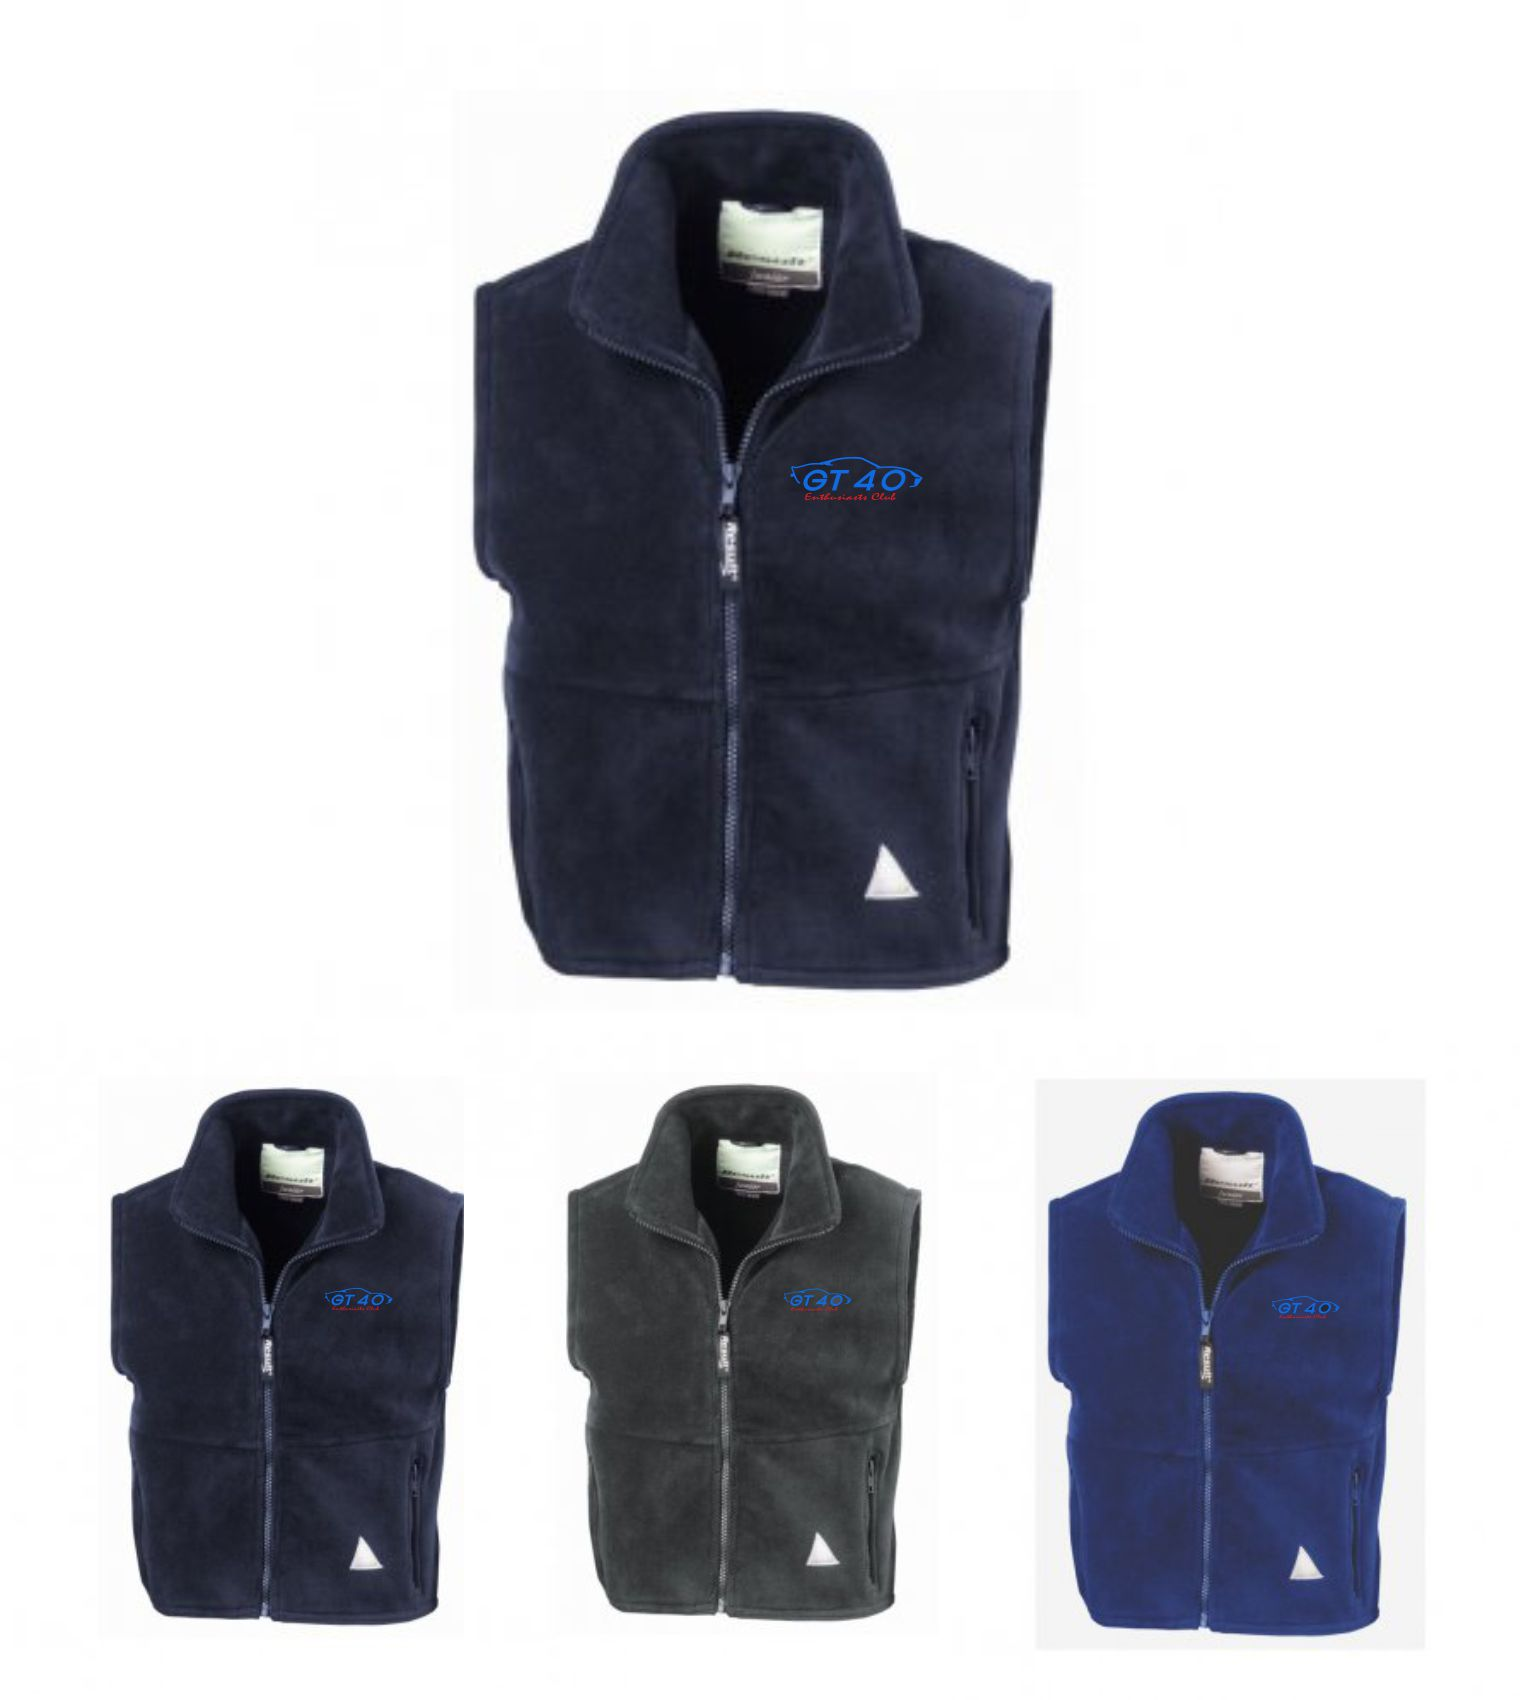 GT40 Enthusiasts Fleece Gilet